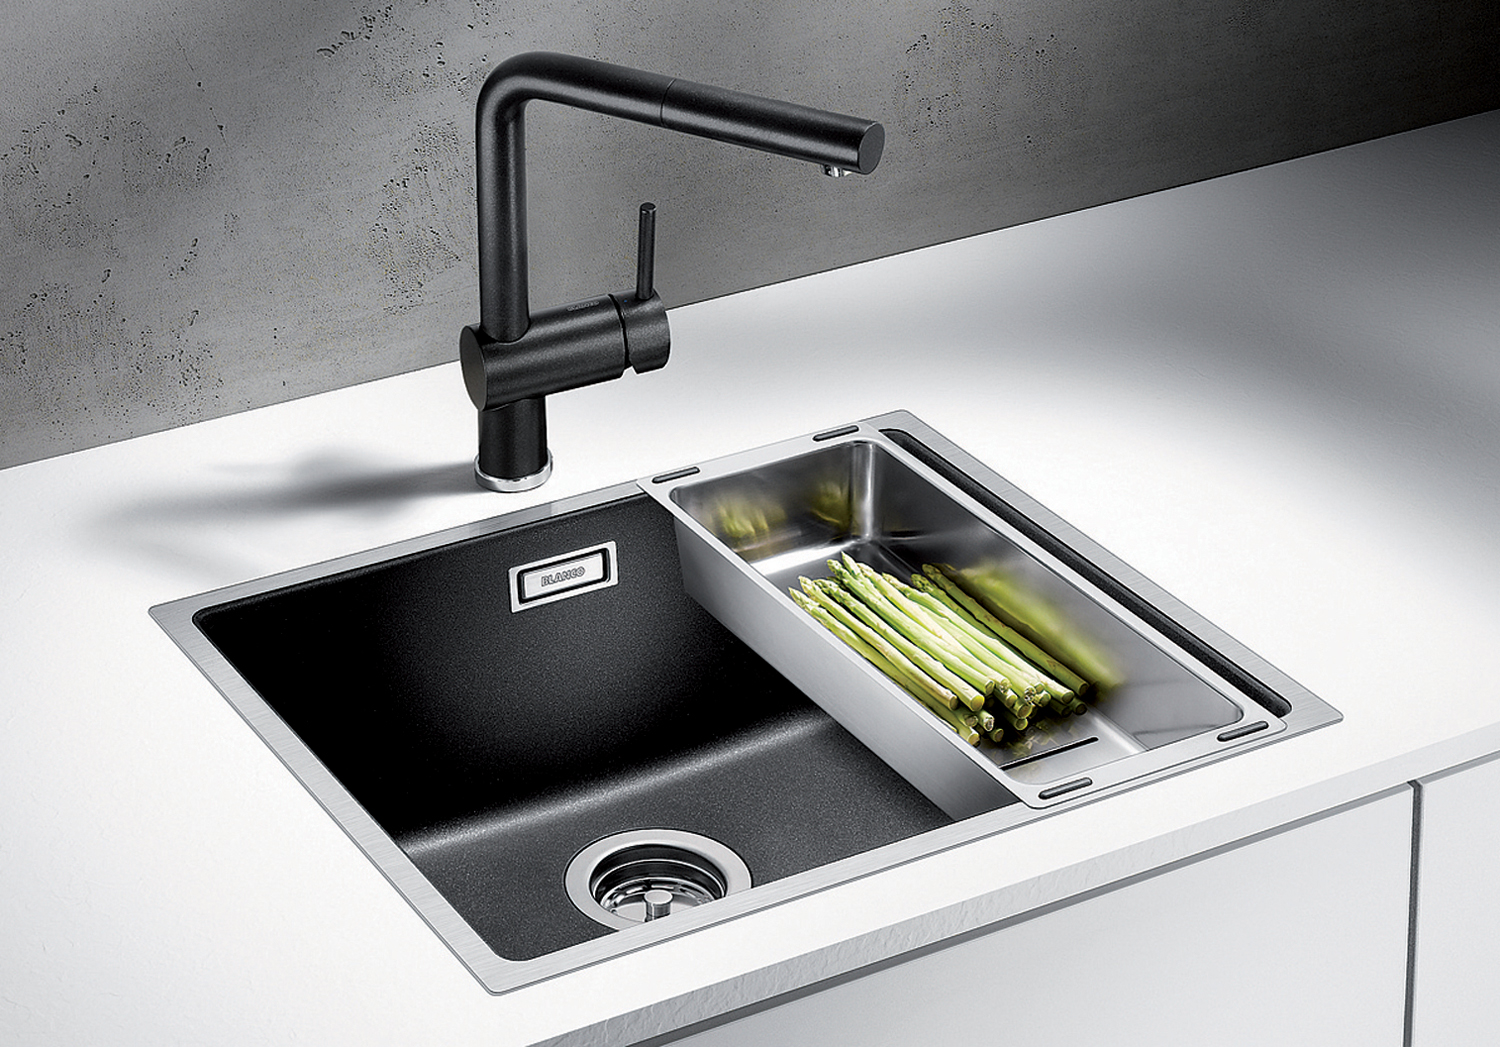 The BLANCO SUBLINE500IF SteelFrame sink